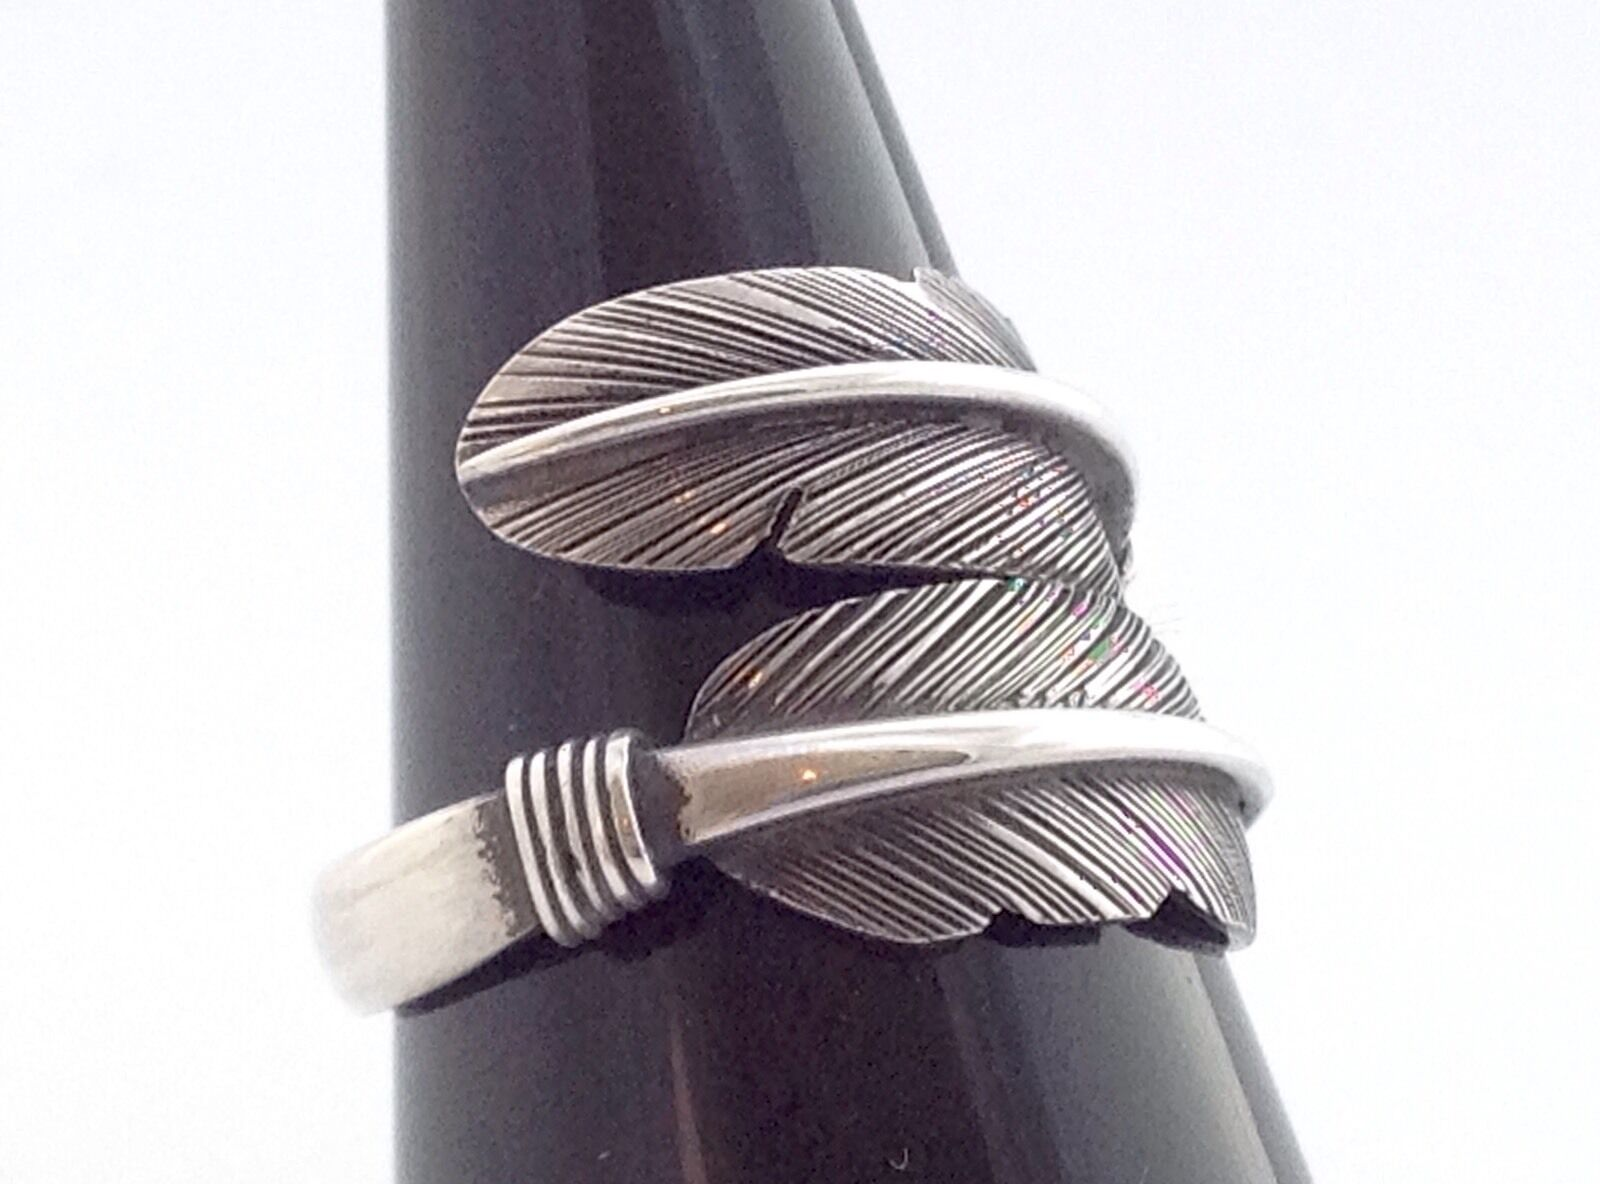 MENS WOMENS STERLING SILVER 925 FEATHER BYPASS JEWELRY RING (FREE SIZE) 9 10 11